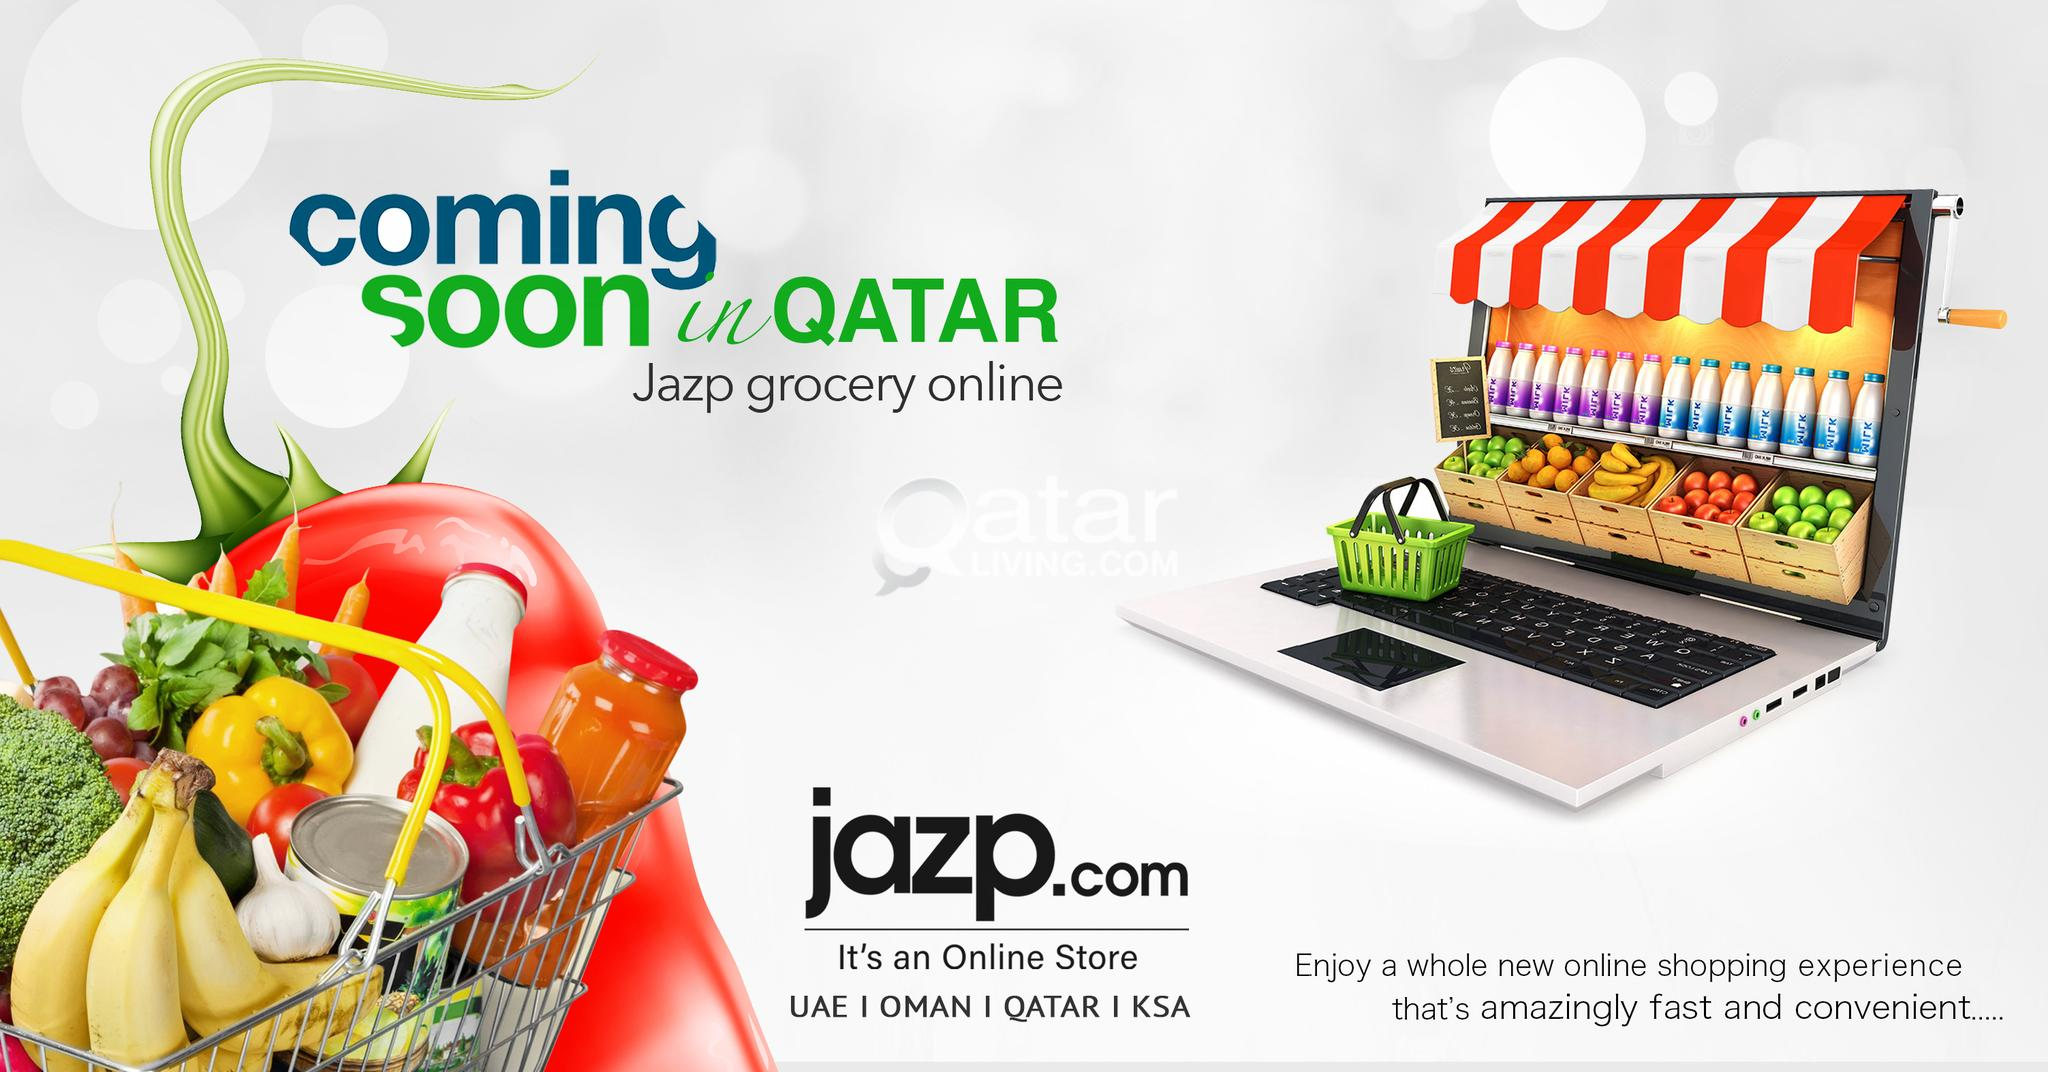 Jazp is stepping into grocery in Qatar